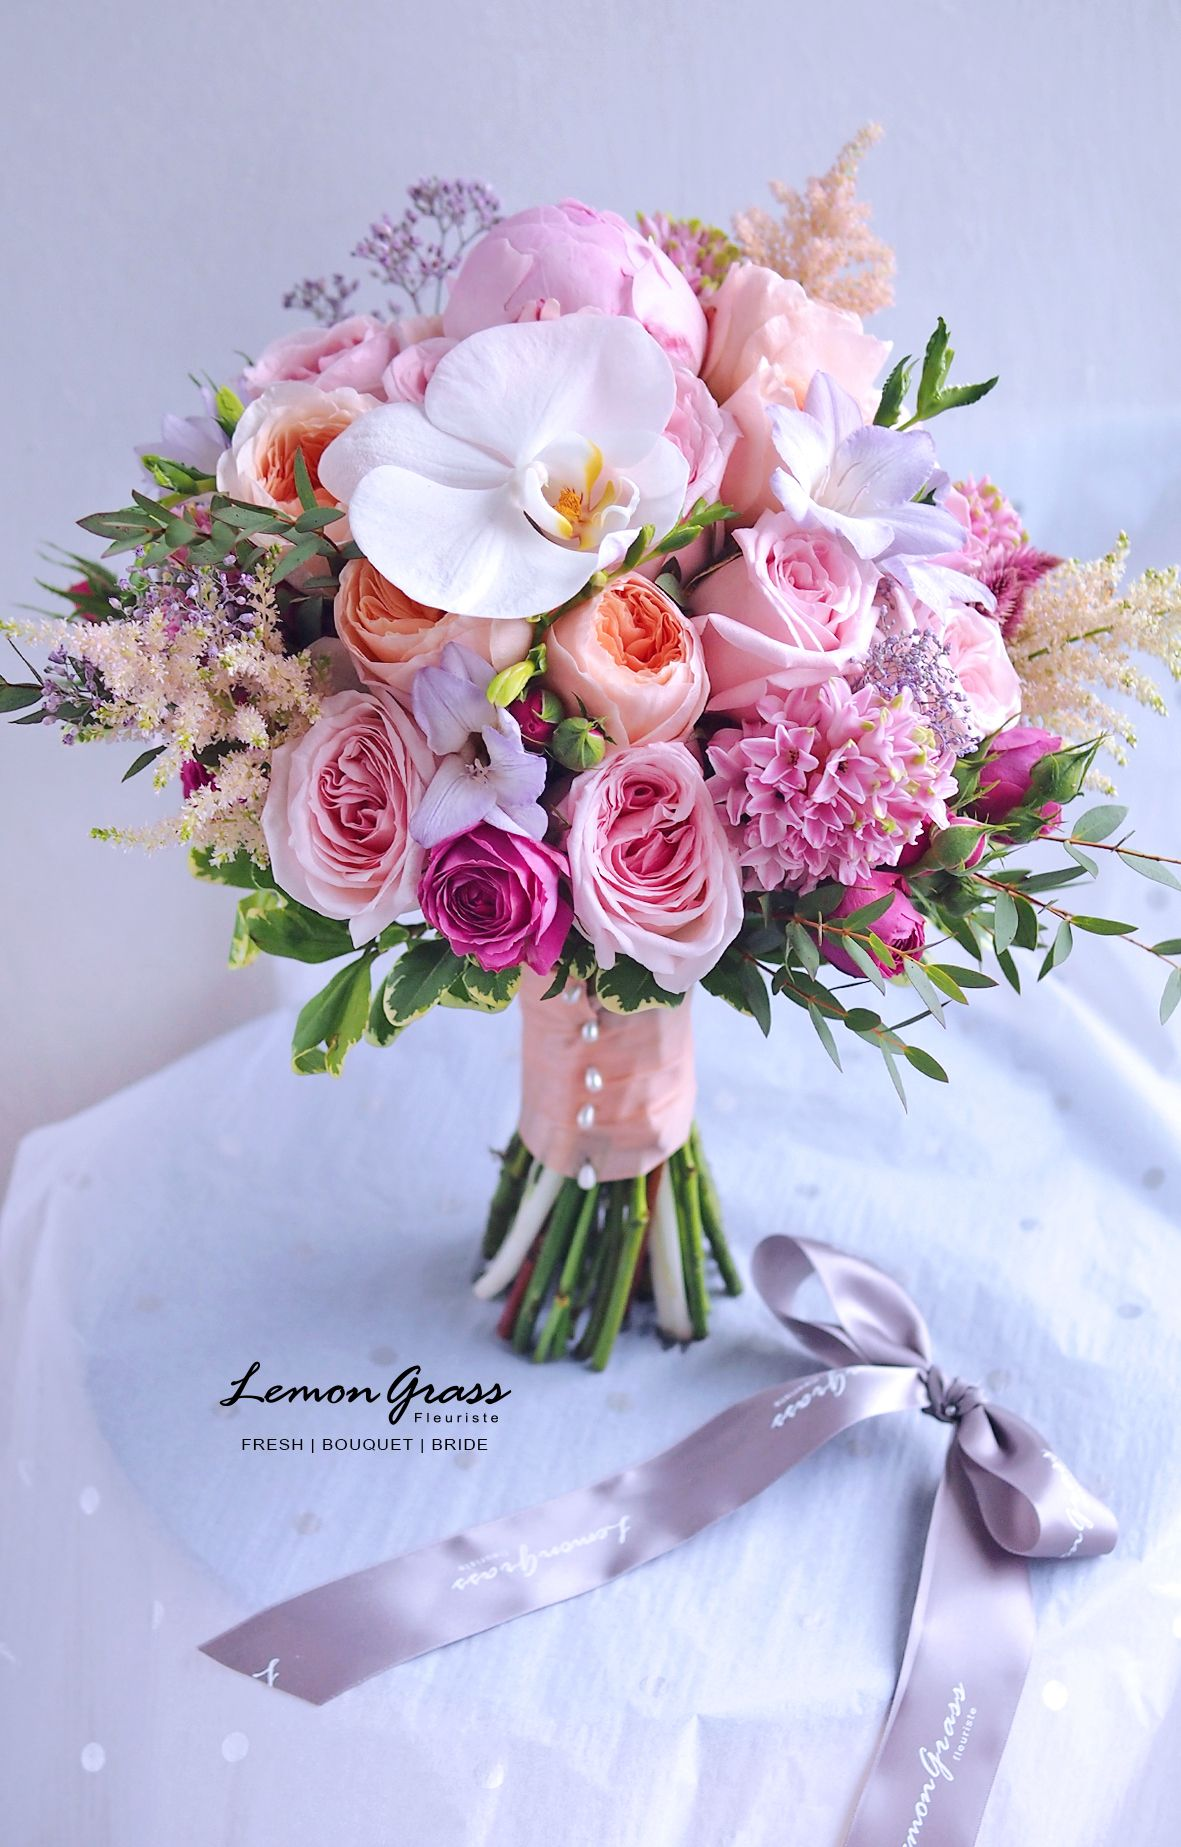 Pin by LemongrassWedding on Fresh Flower Bouquets | Pinterest ...